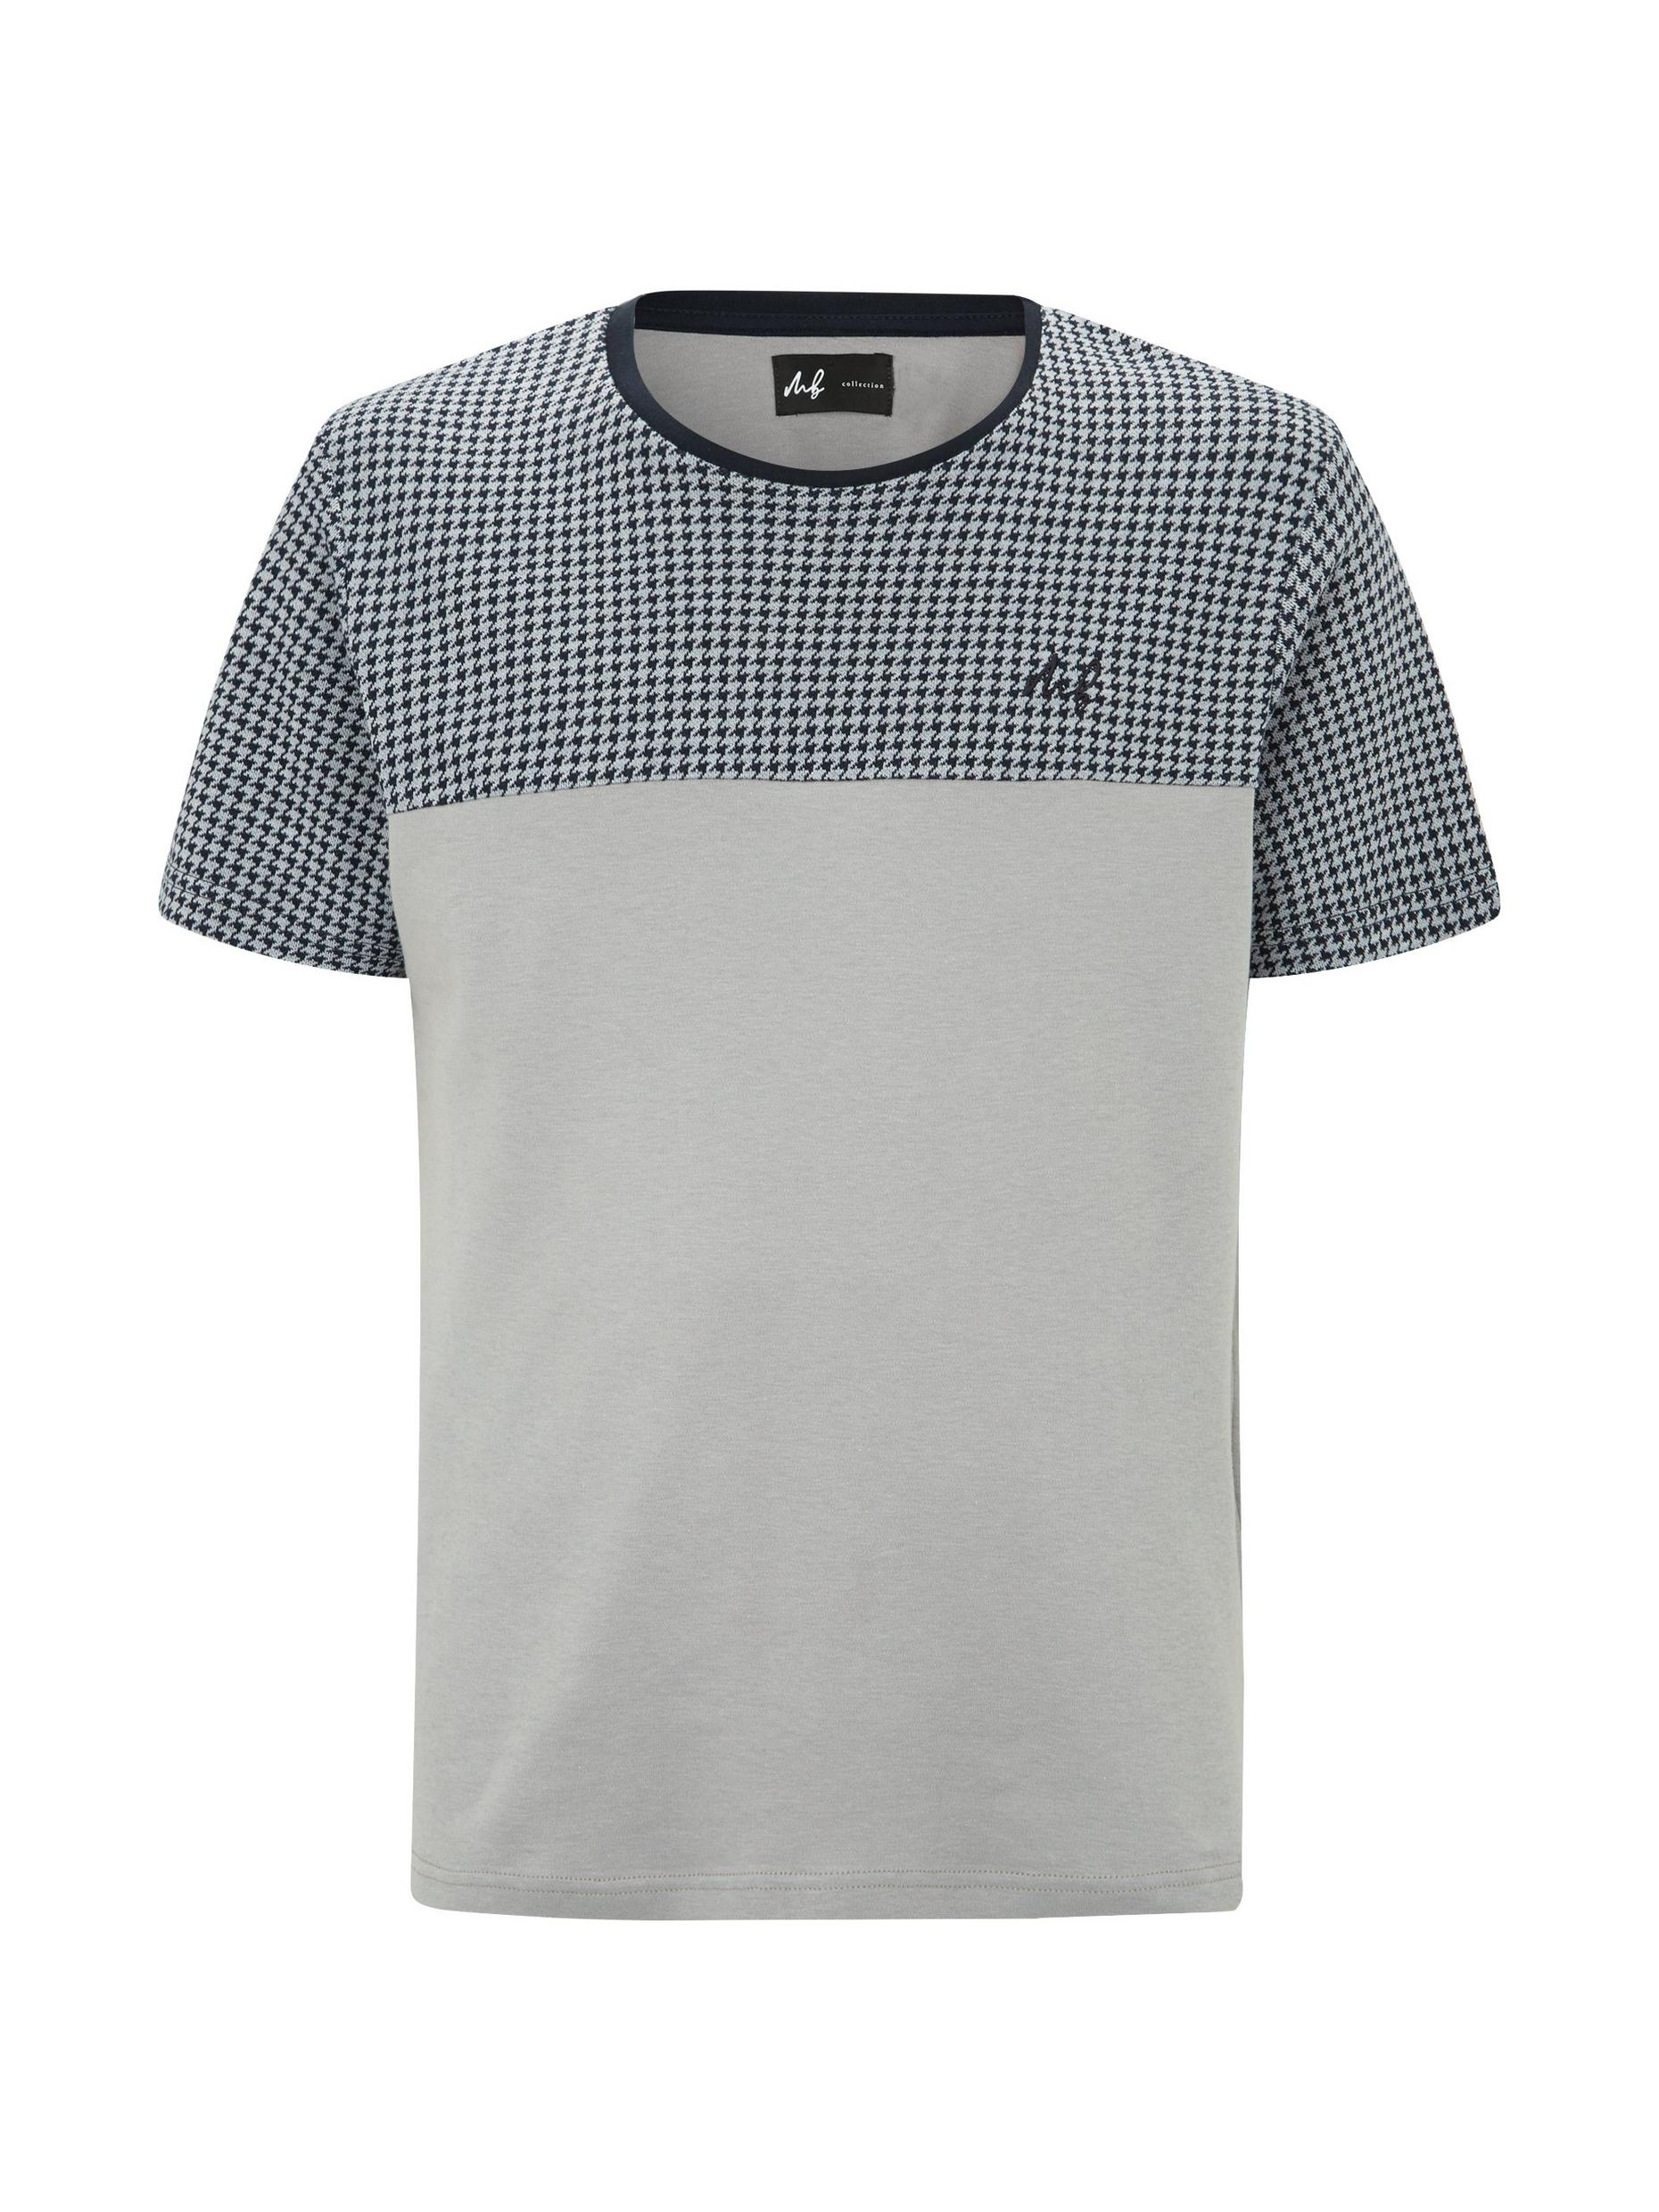 MB Collection Navy Puppytooth Cut and Sew T Shirt